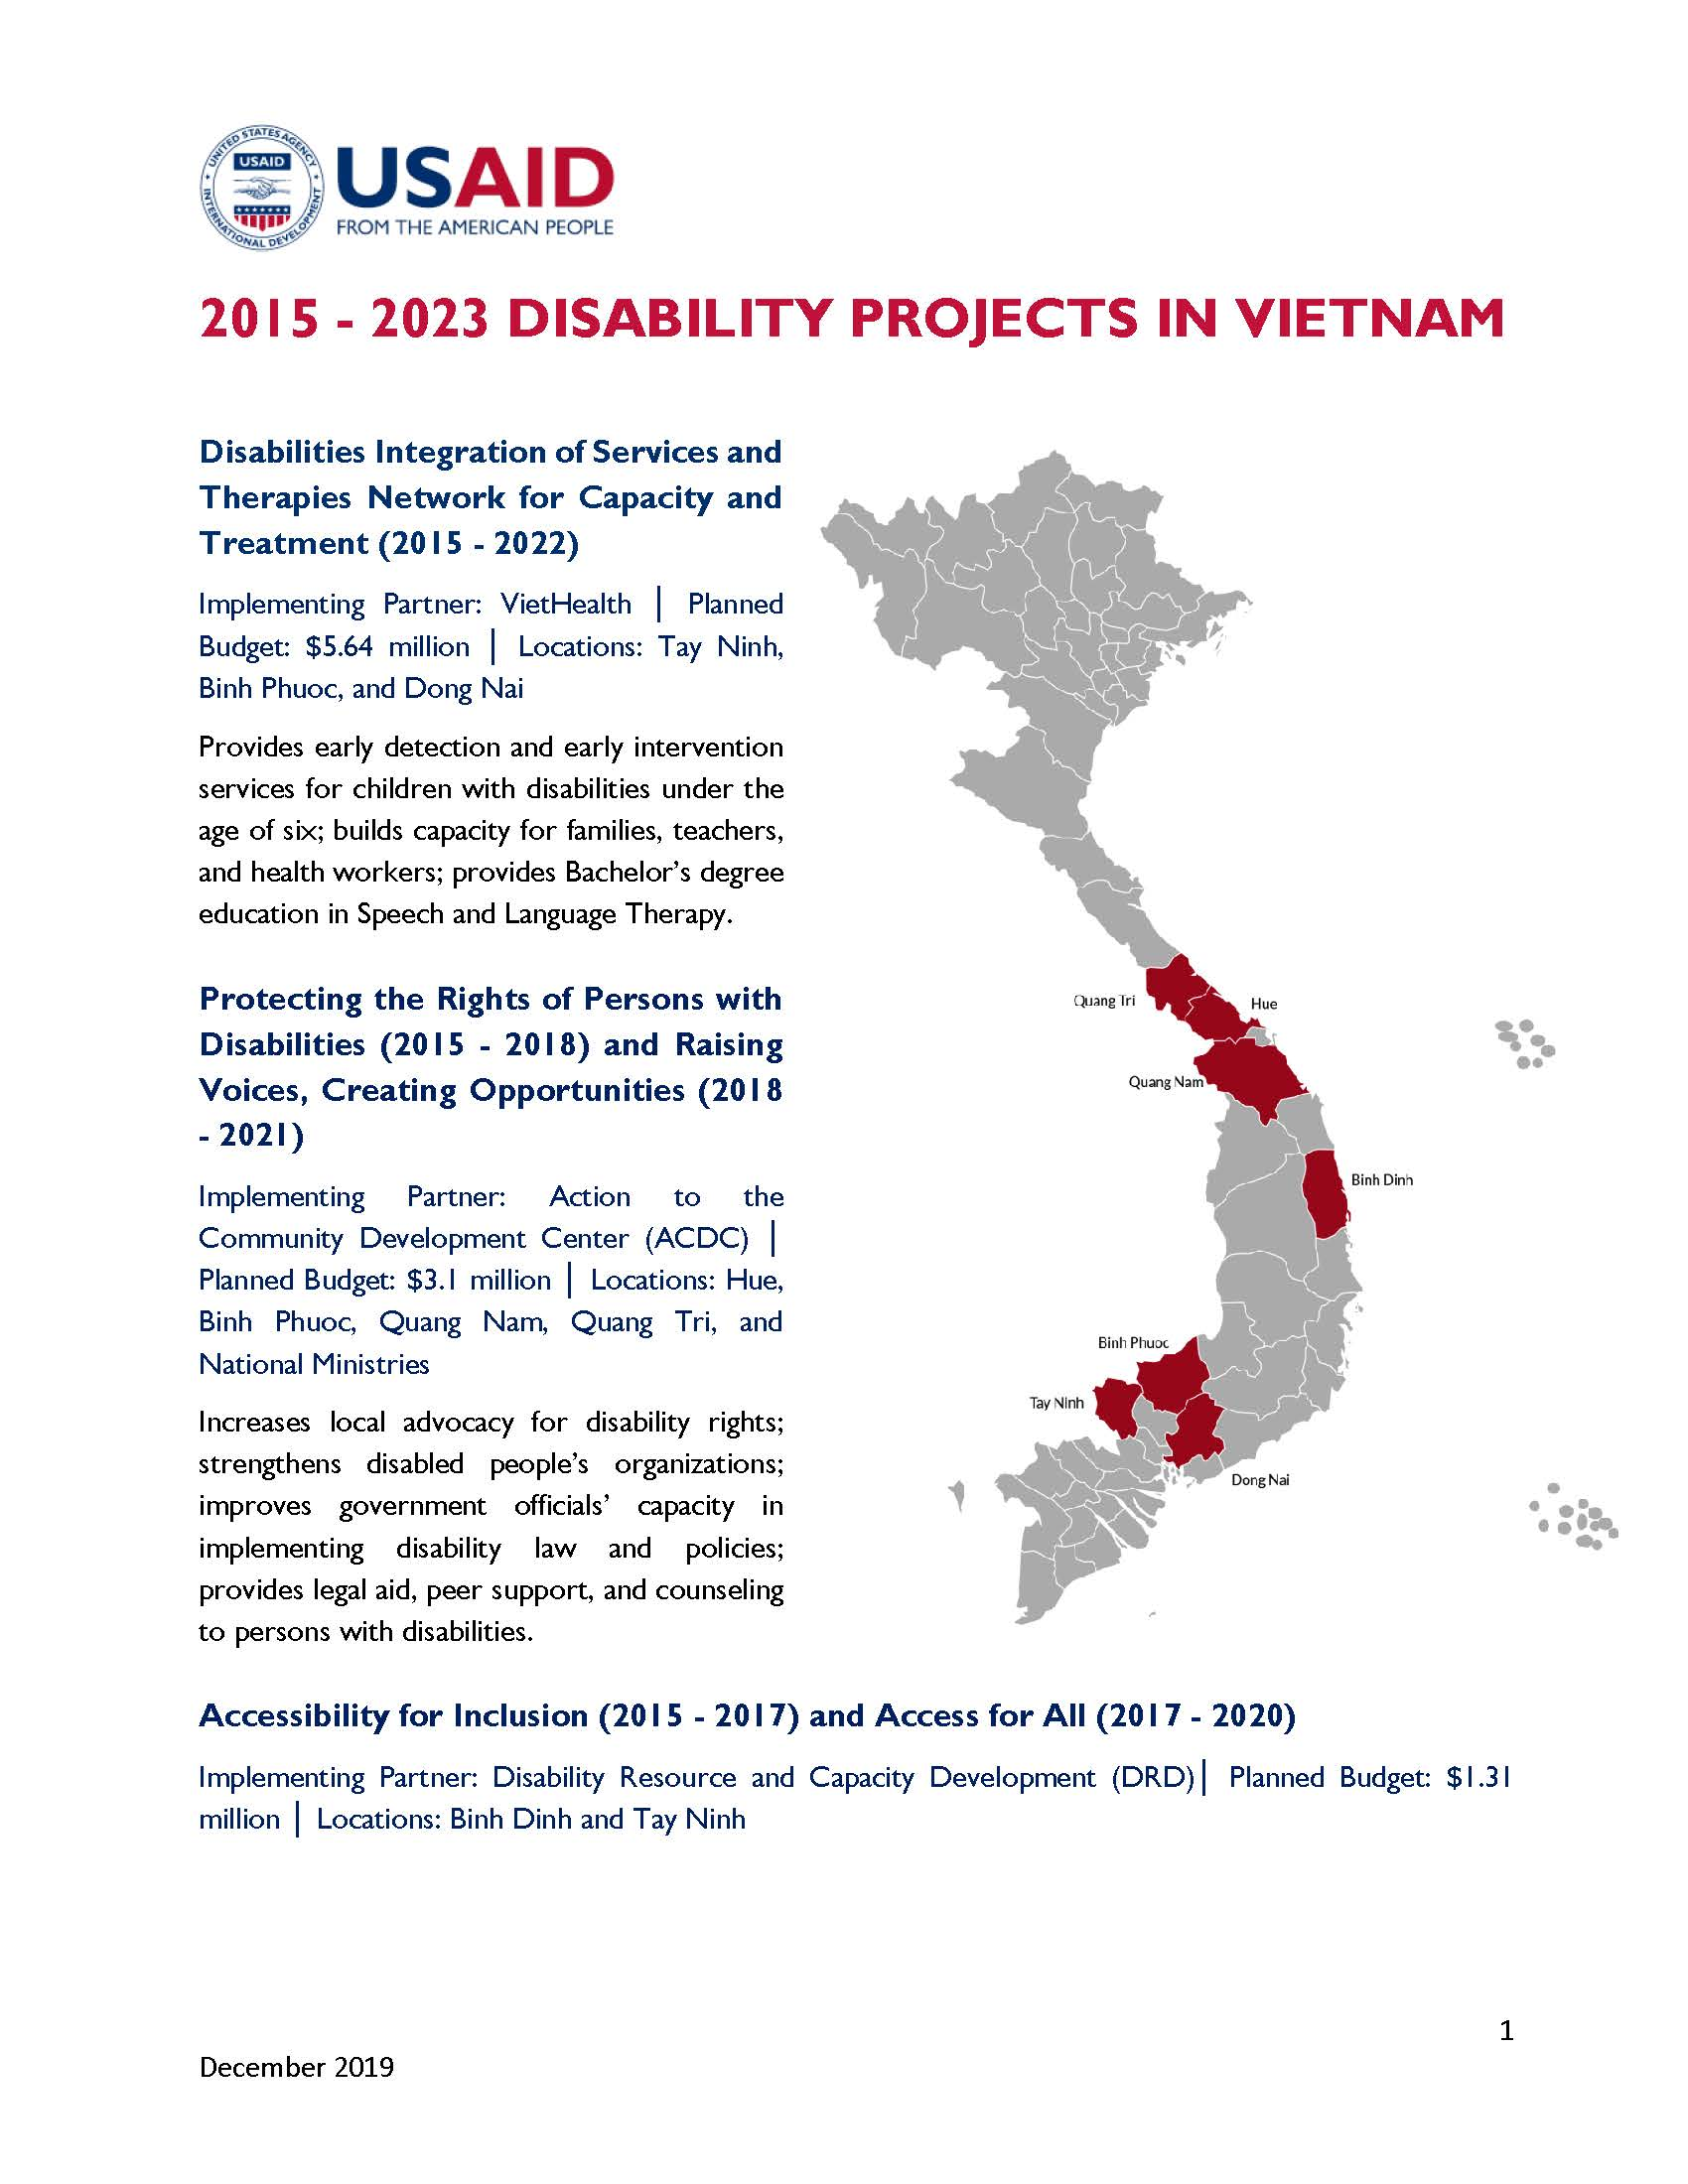 Fact sheet: 2015 - 2023 disability projects in Vietnam